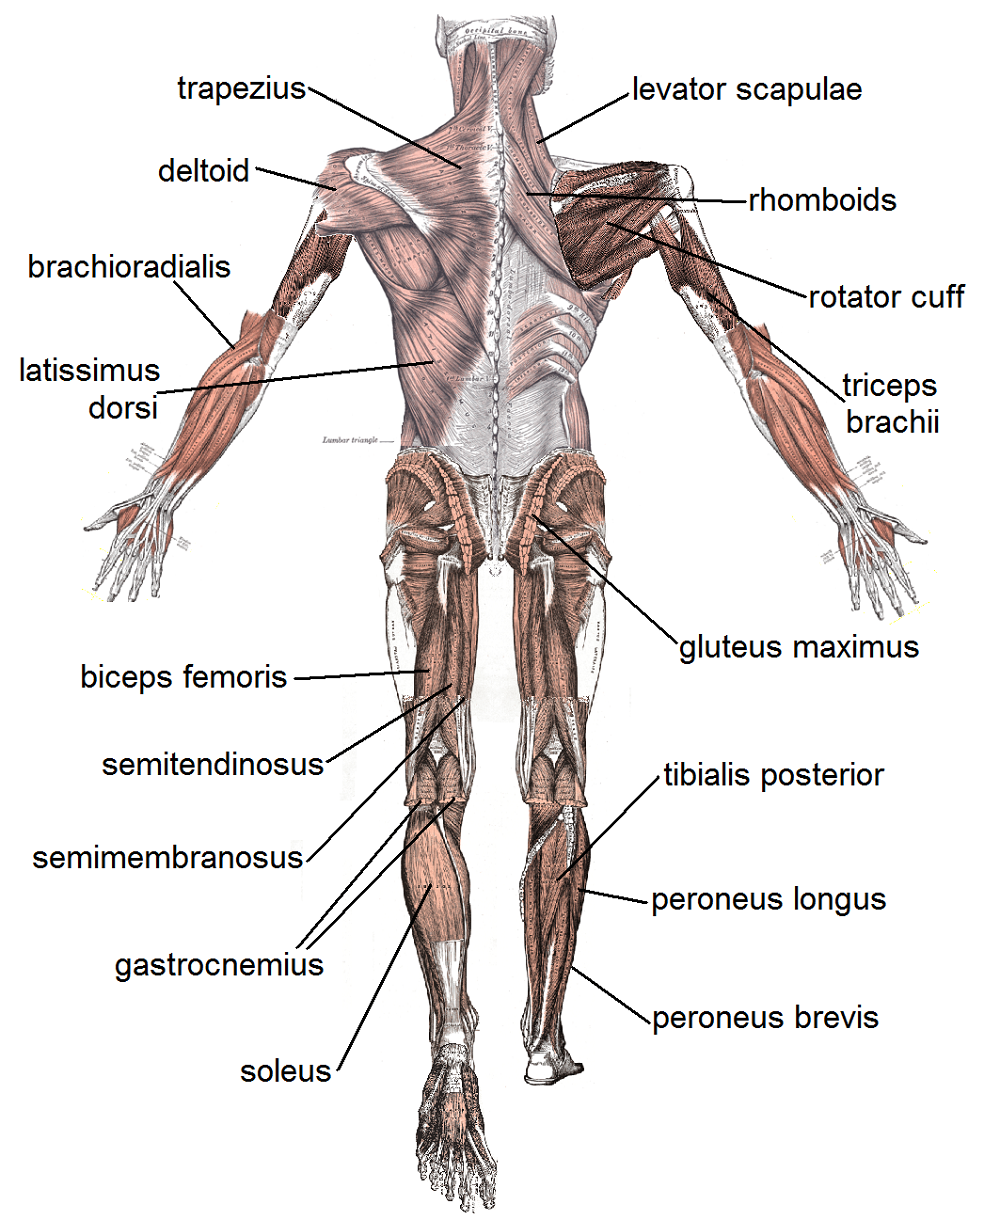 Body muscle diagram labeled